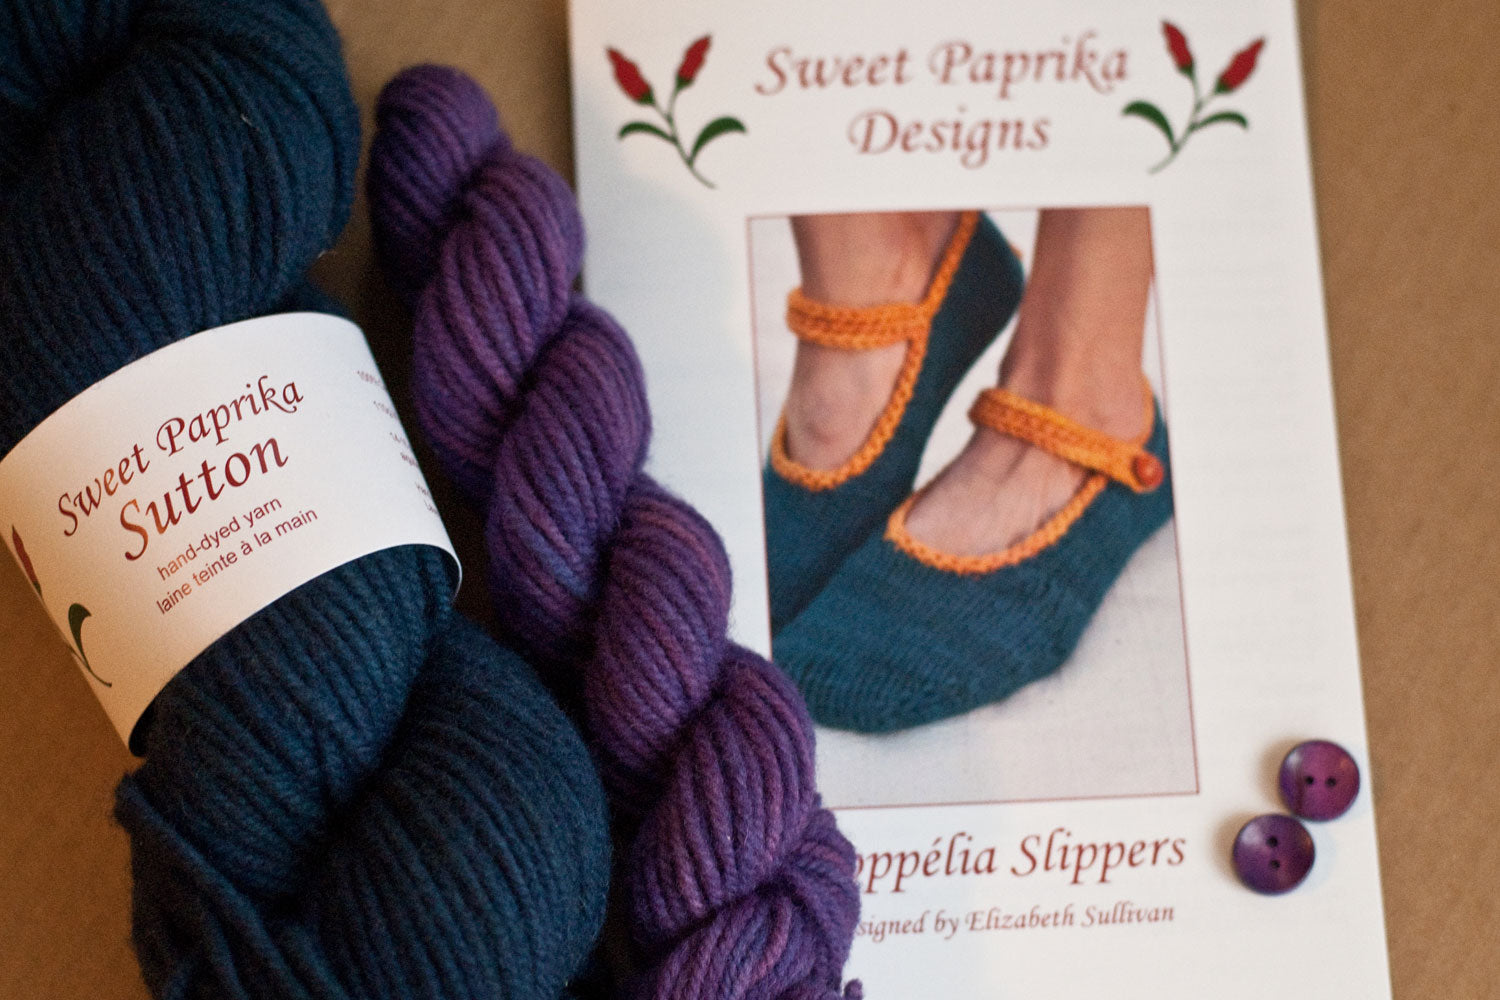 kit components: knitting pattern, bulky yarn in dark blue and purple, purple buttons